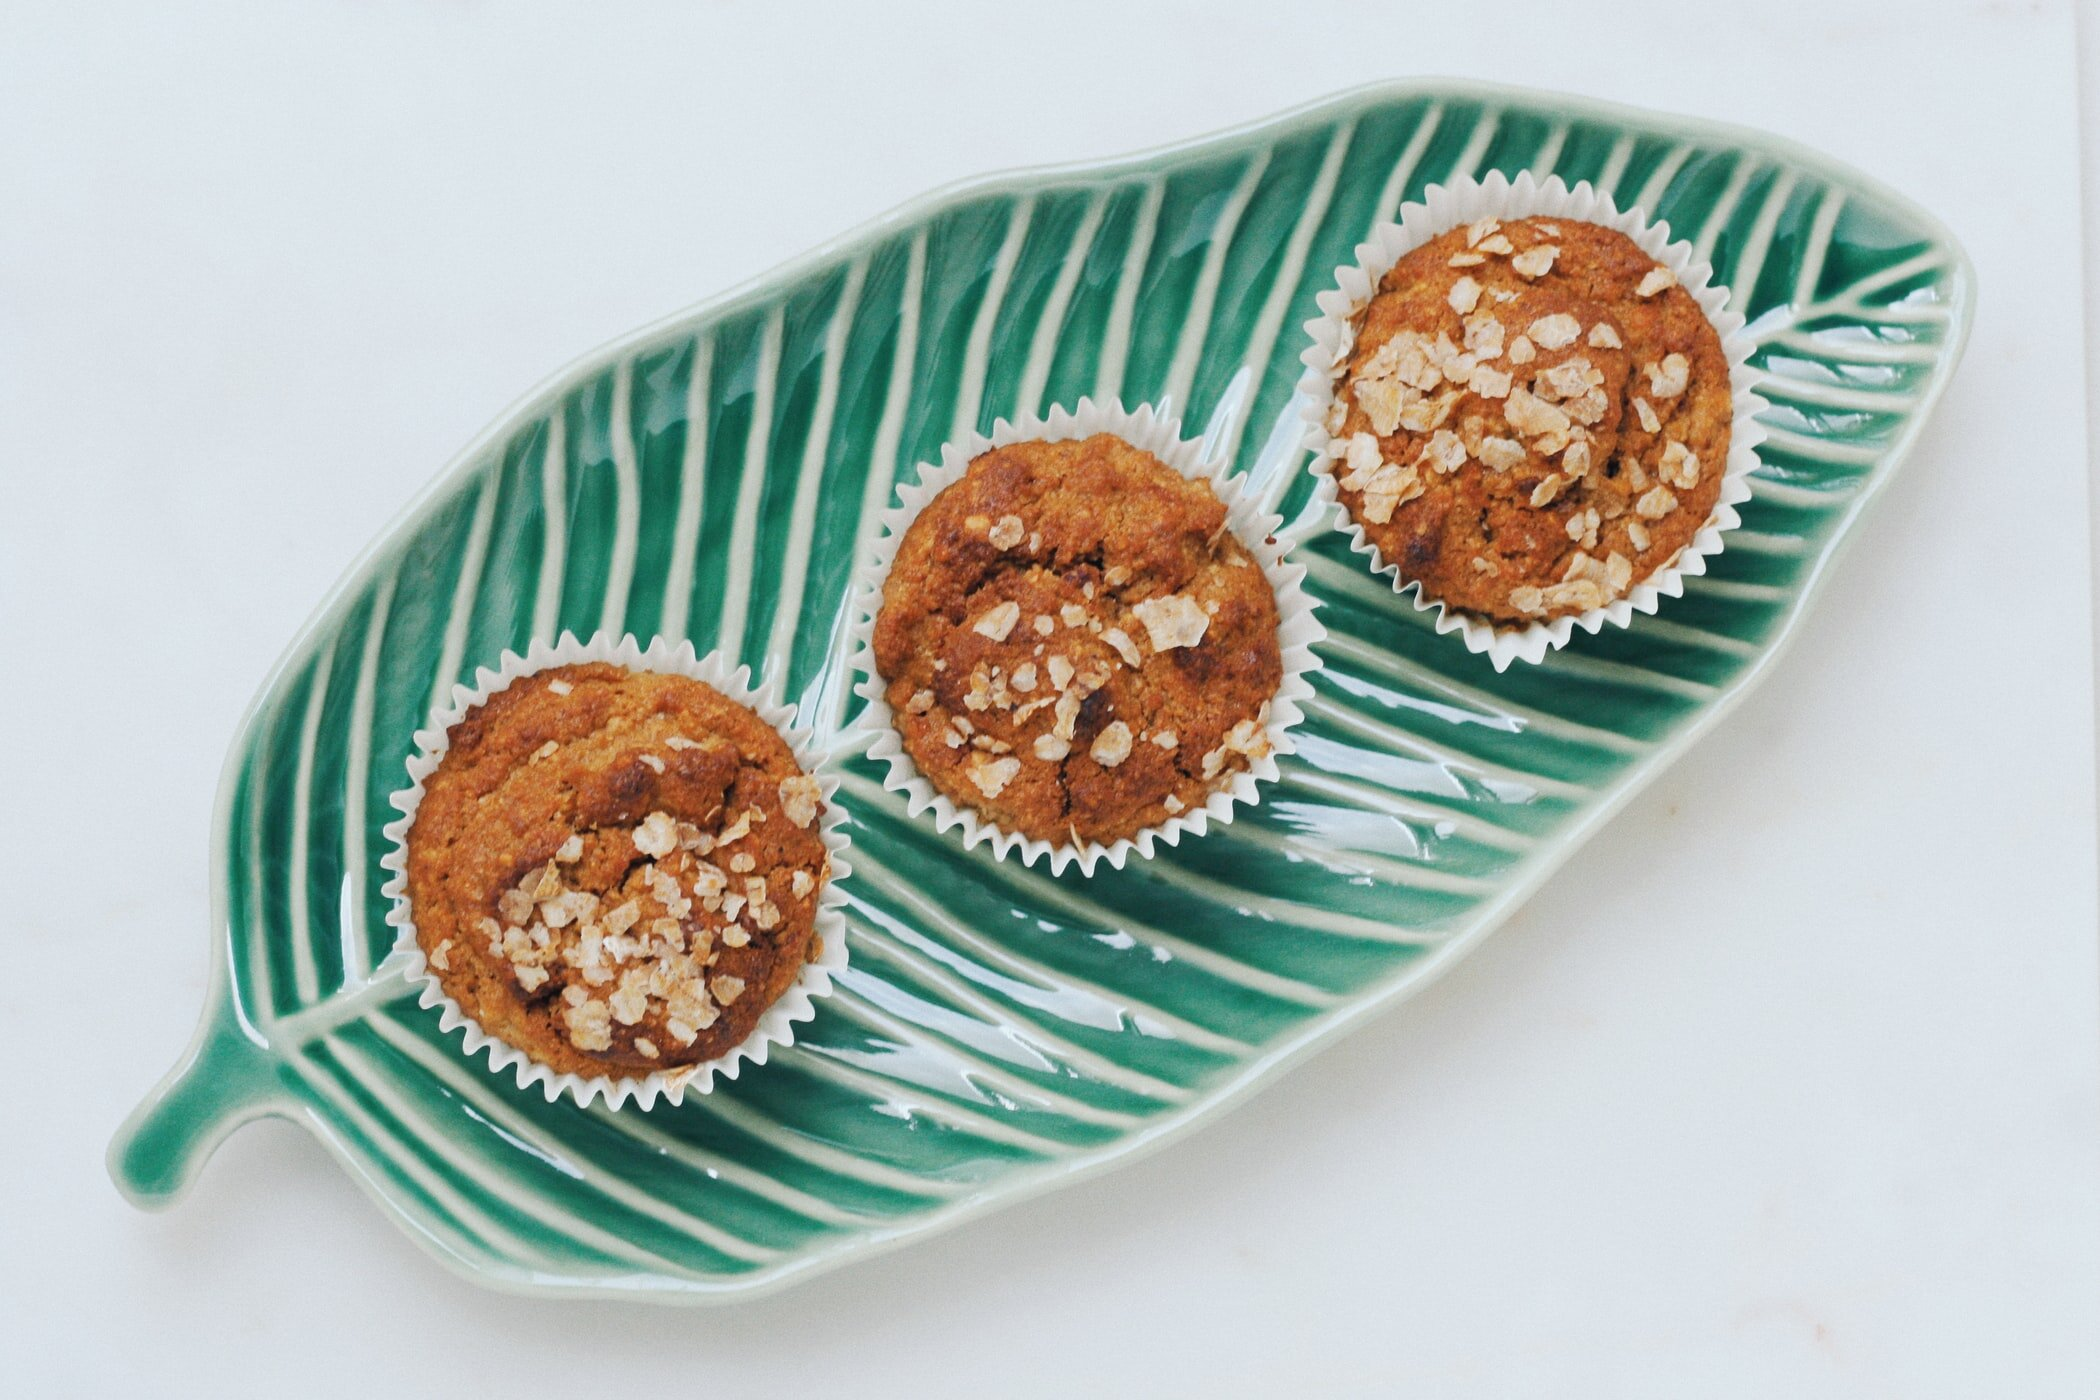 Yoghurt, pear and almond crumble muffins